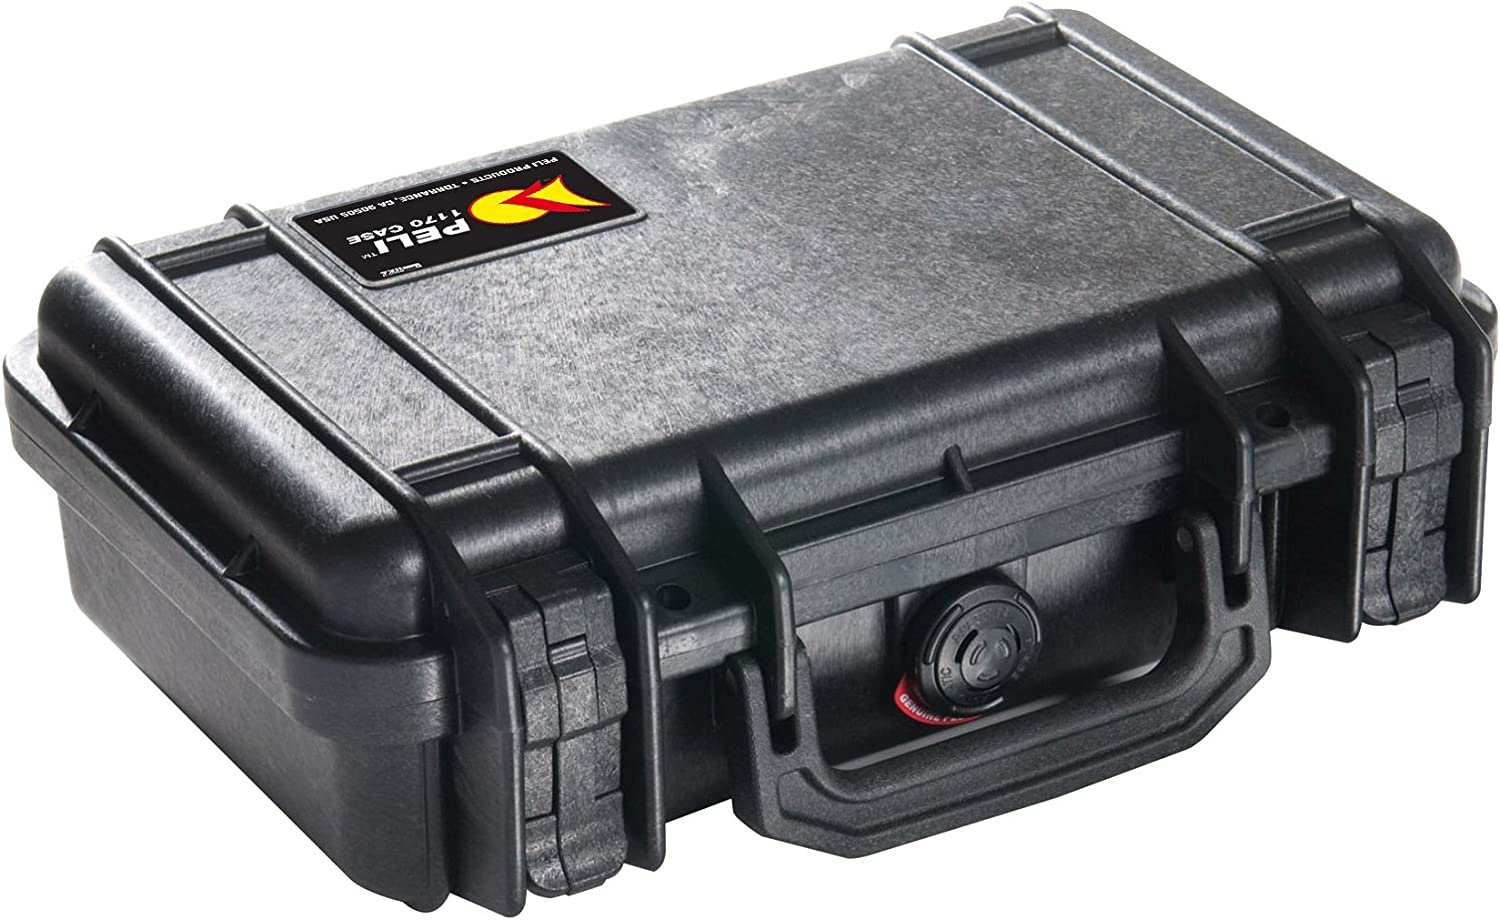 with Customisable Foam Insert 7L Capacity Silver IP67 Watertight and Dustproof Made in US PELI 1170 Professional Camera Case